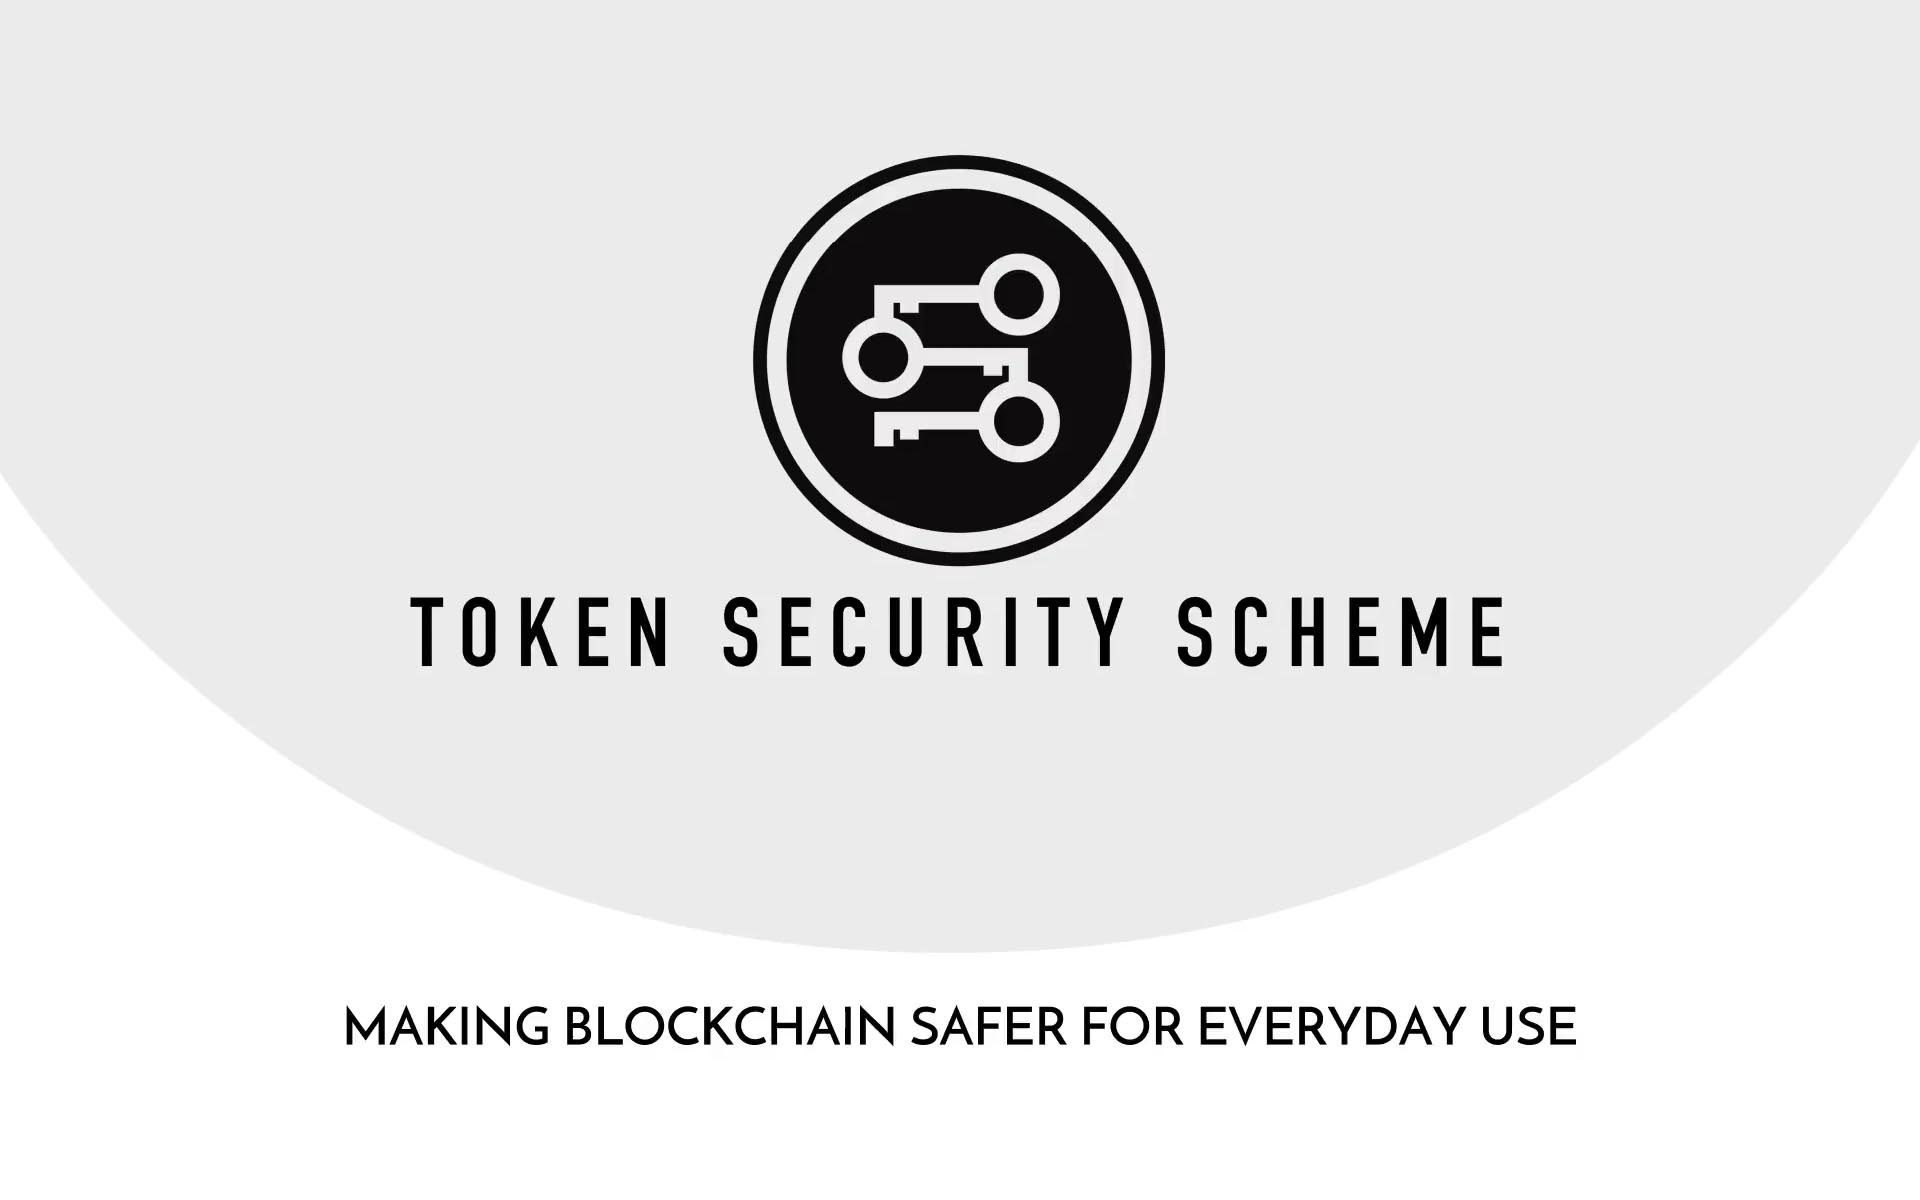 Safe, Secure and Sought-After: Improving Trust via Crypto-Security with the Token Security Scheme